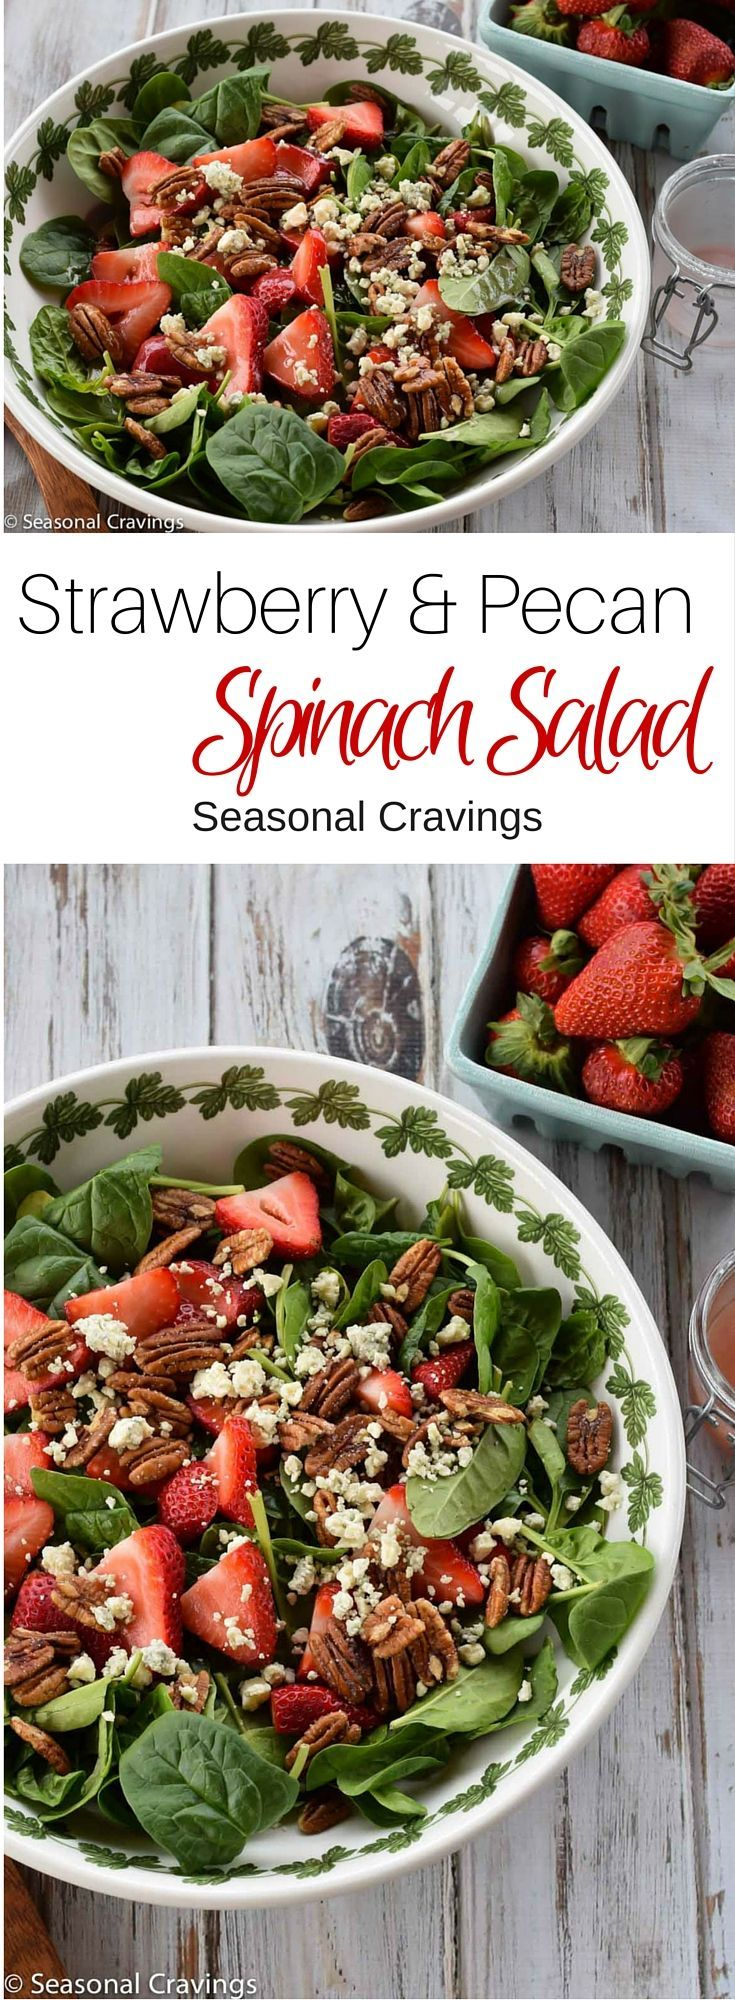 Strawberry and Pecan Spinach Salad - healthy, delicious way to eat fresh summer strawberries.